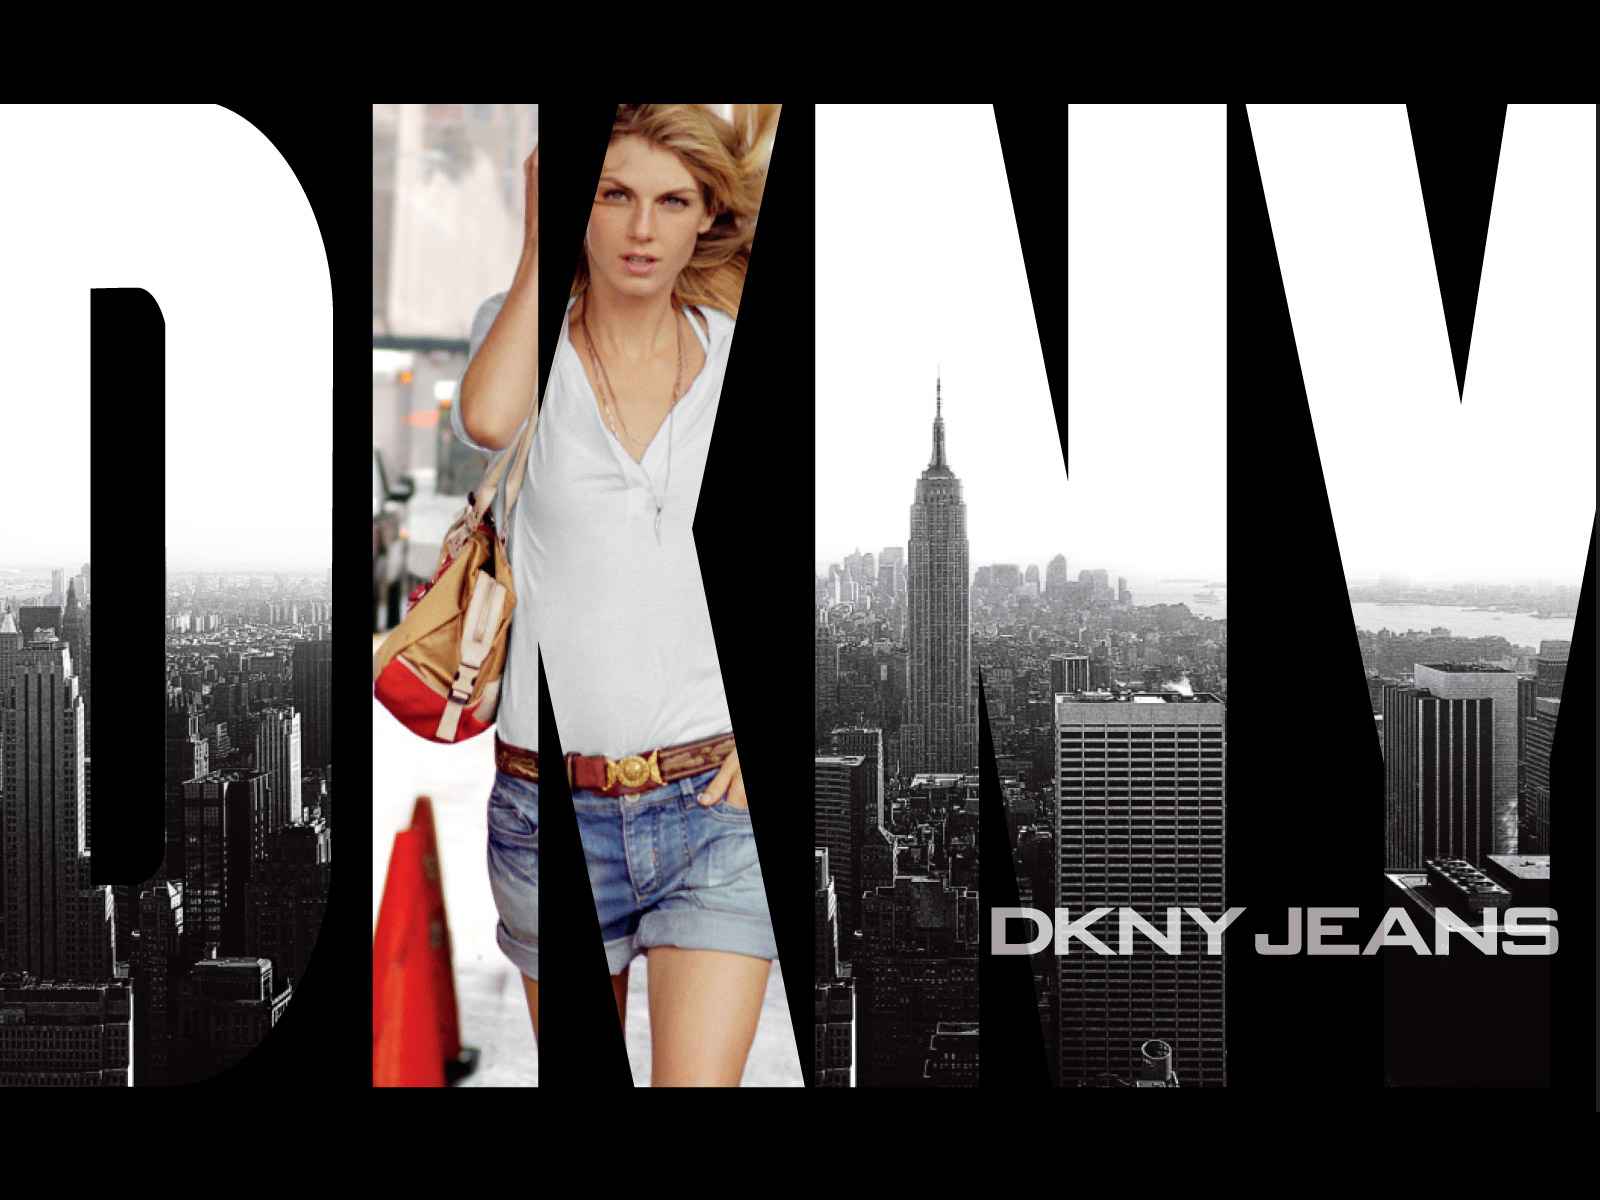 Stefano donno dkny donna karan new york for Donna karen new york